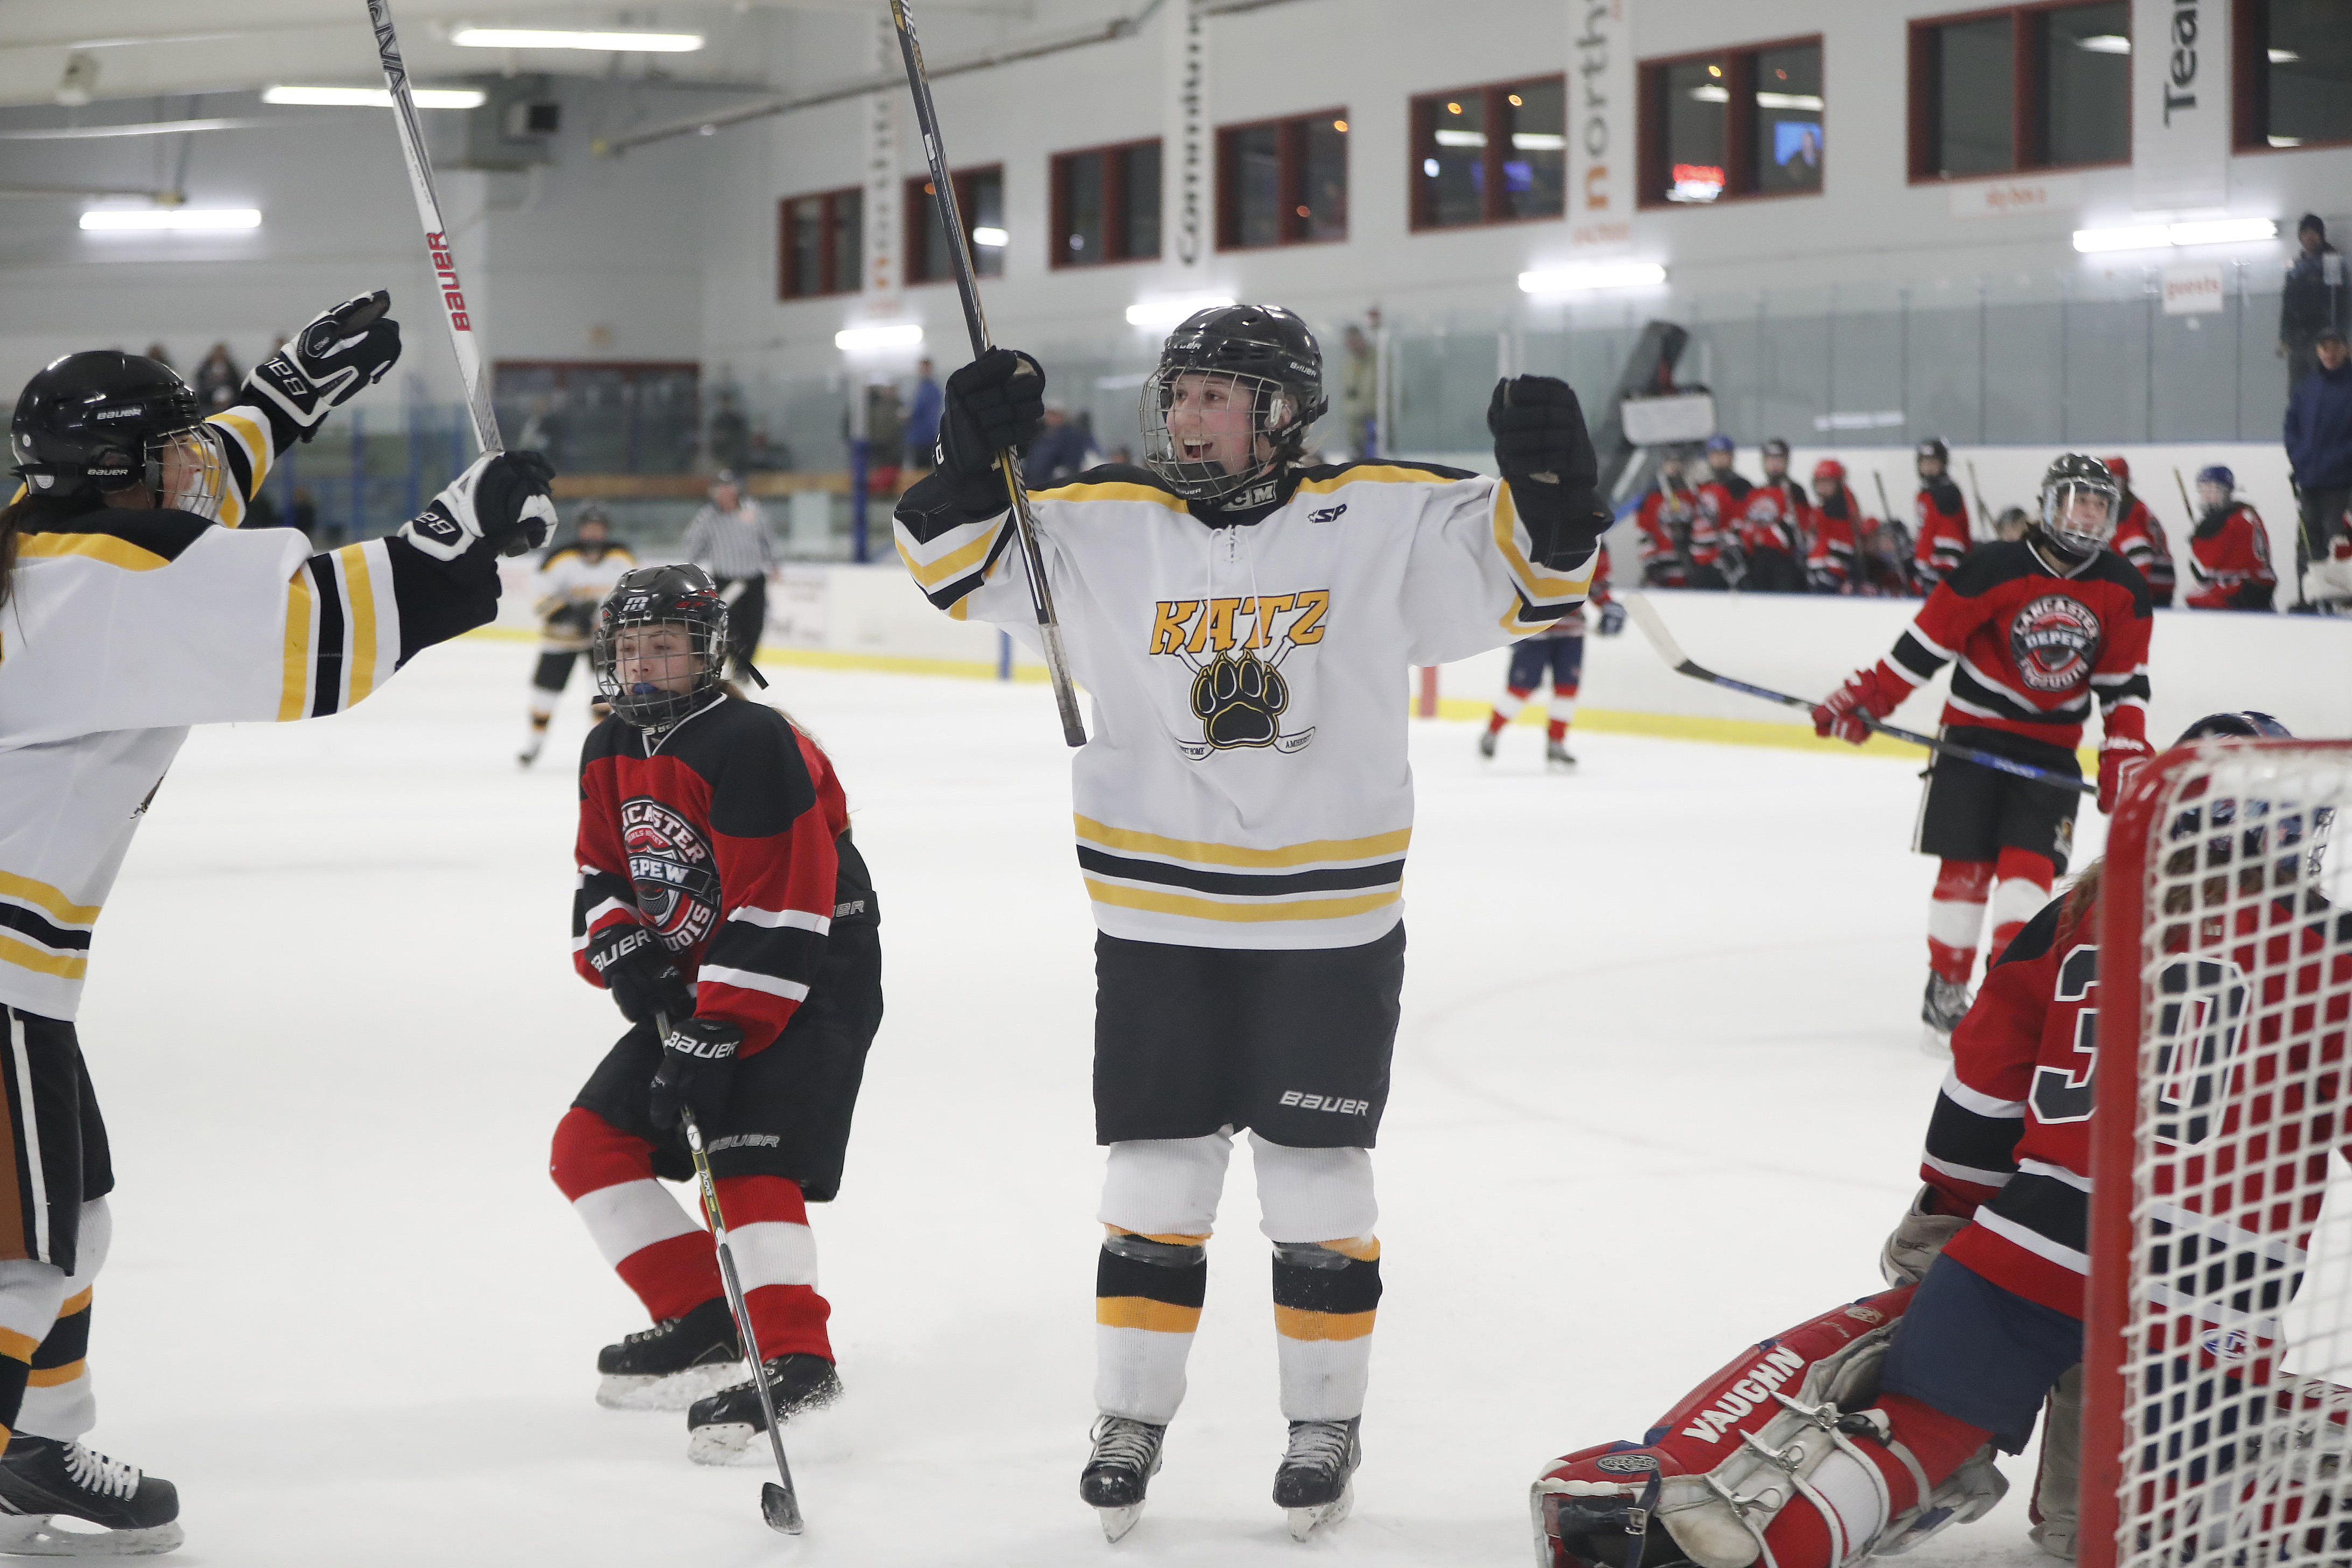 Julia Mings celebrates after scoring her fifth goal of the game and the 100th of her career. (Harry Scull Jr./Buffalo News)